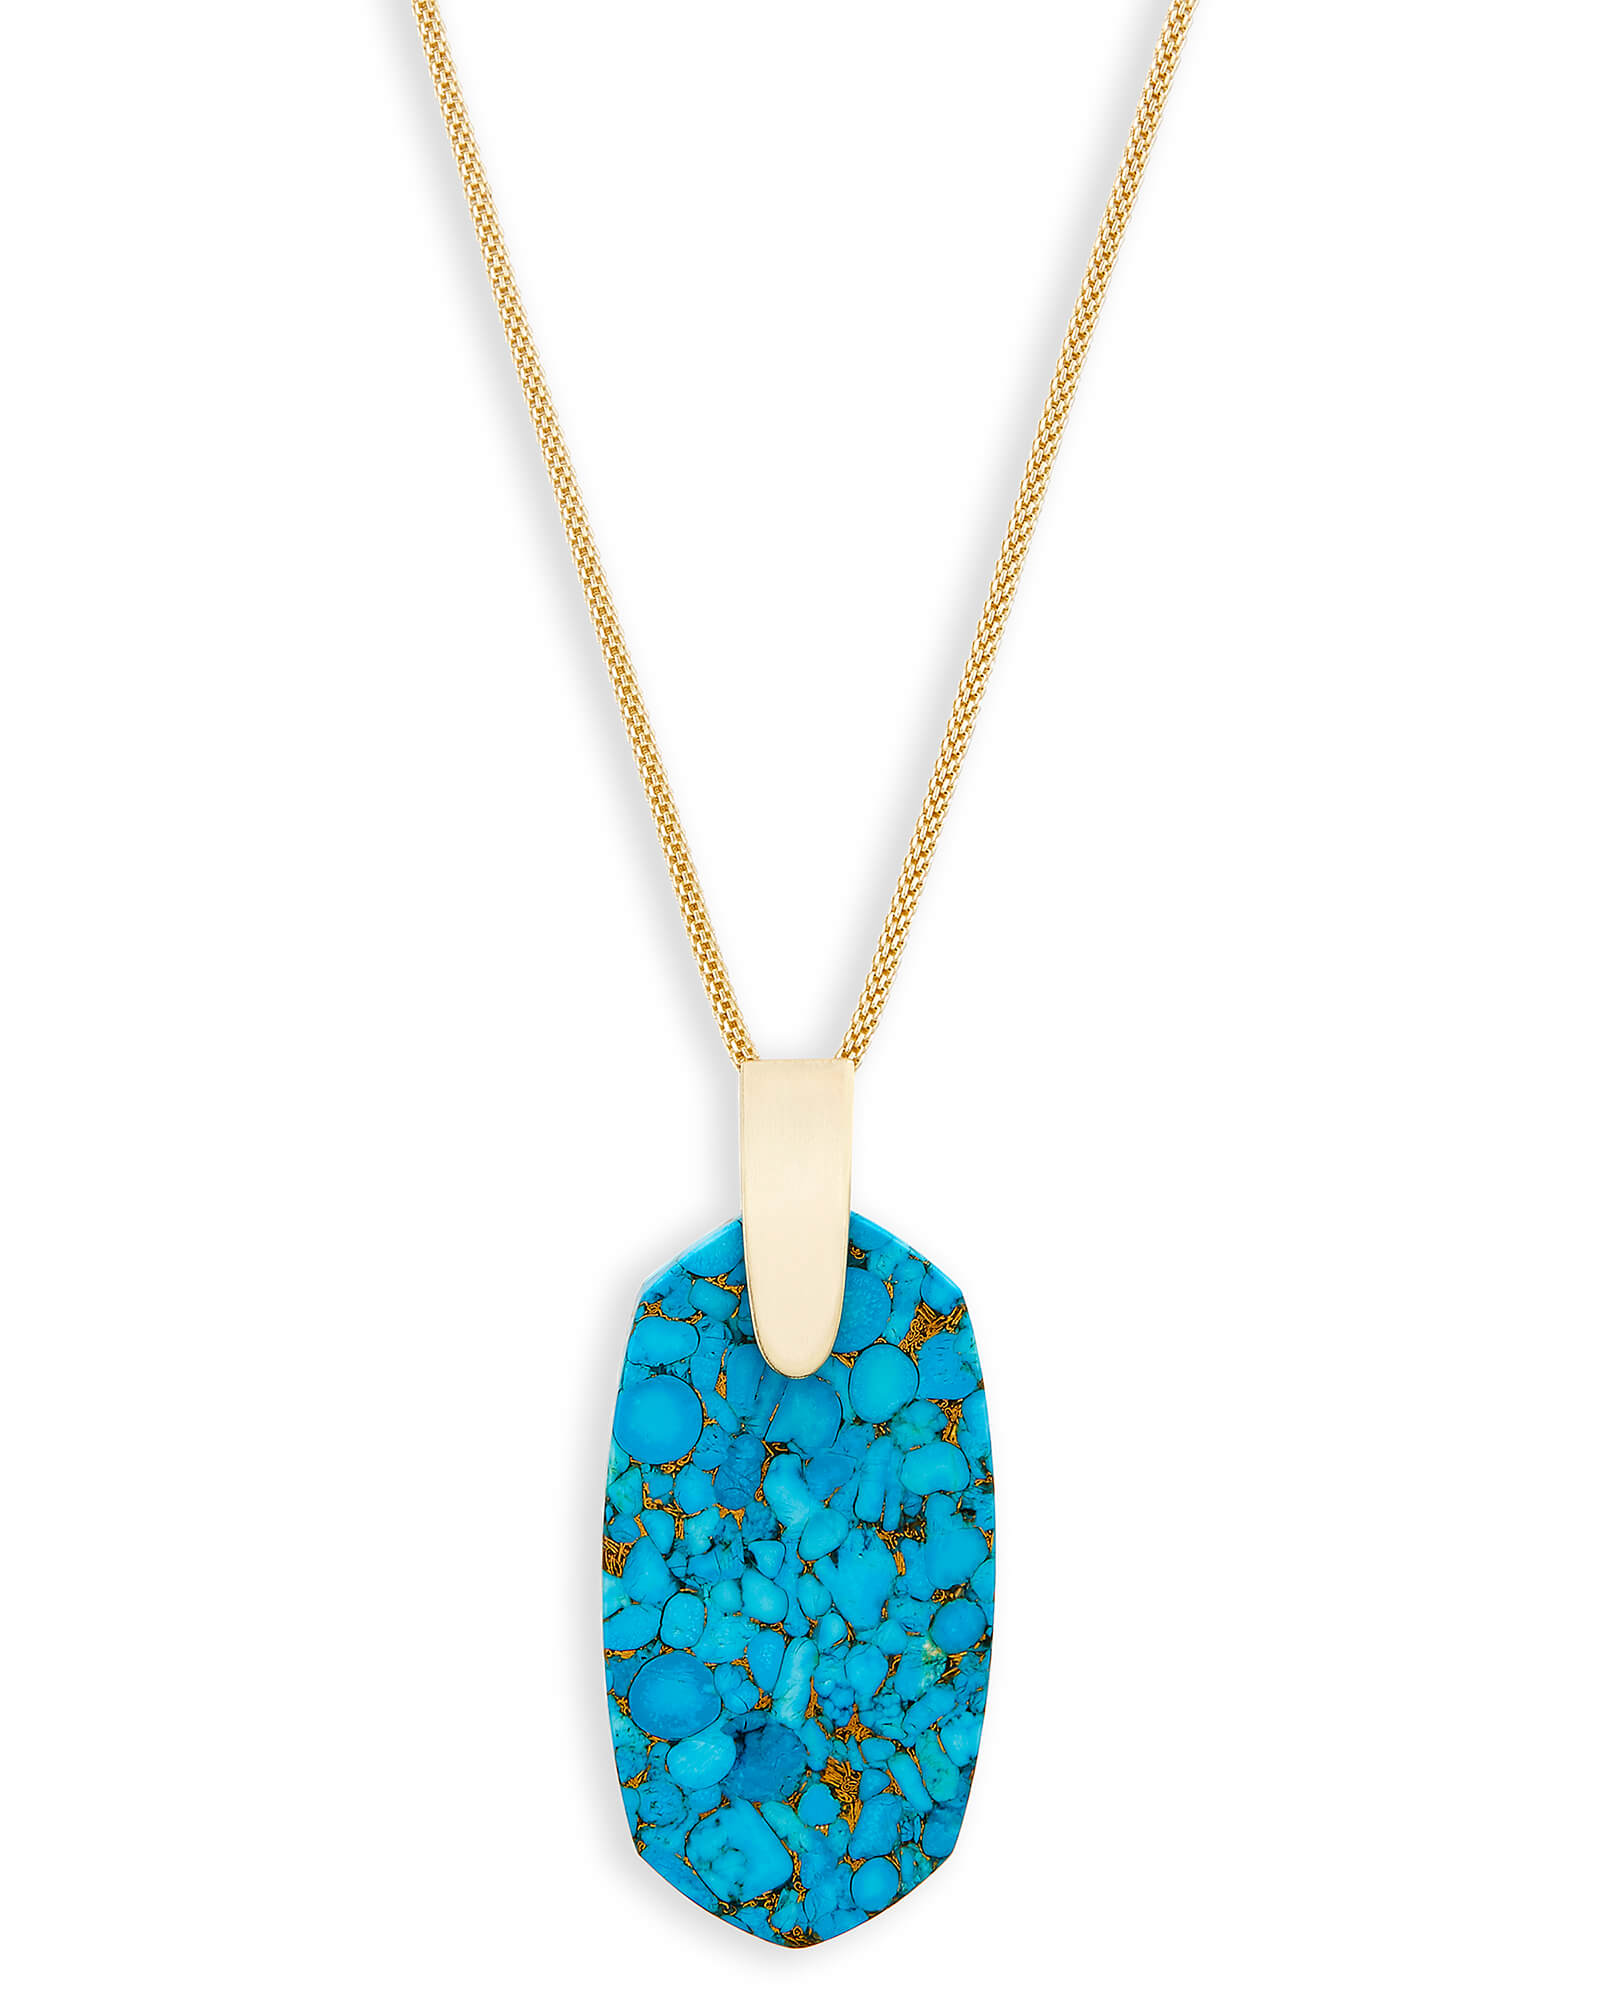 Inez Long Pendant Necklace in Bronze Veined Turquoise